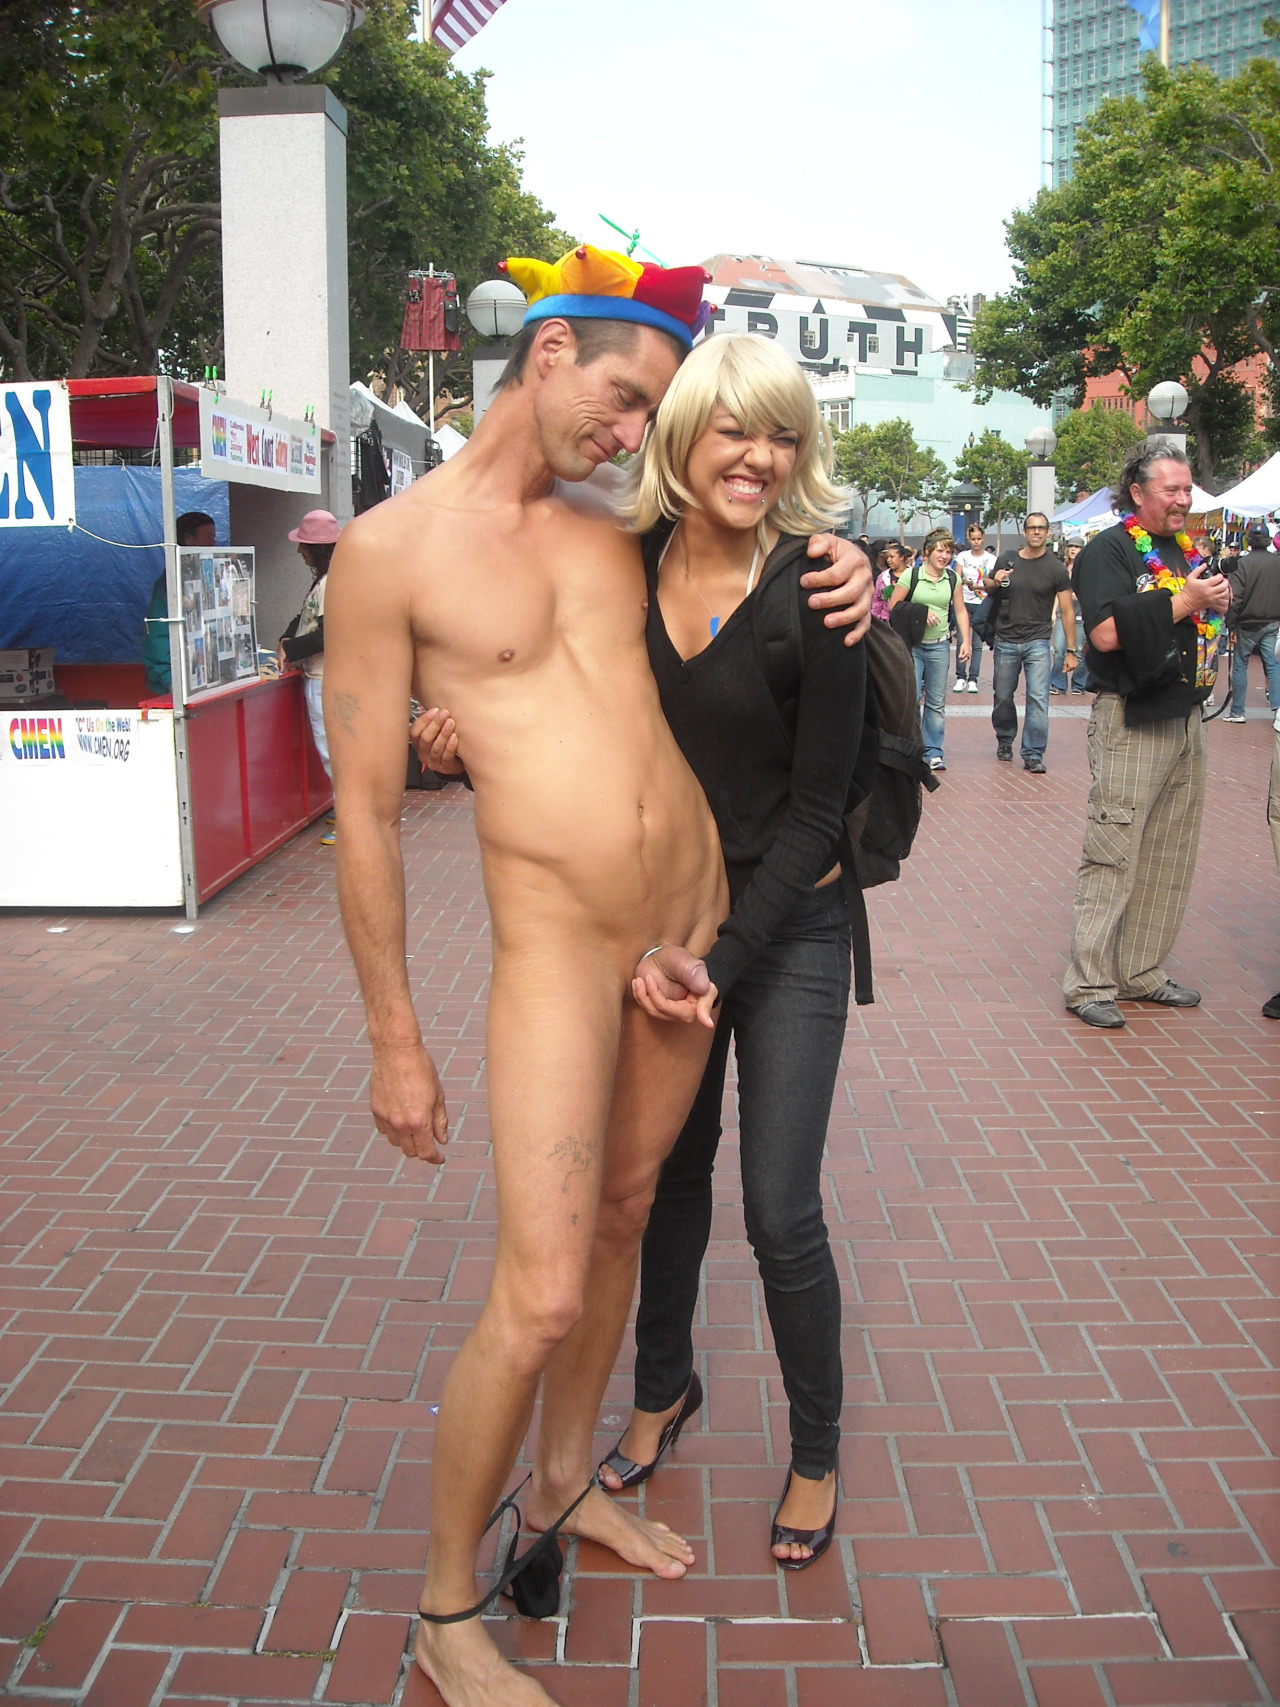 Naked chicks in public Walking Naked At Street Cfnm Other Hot Photos